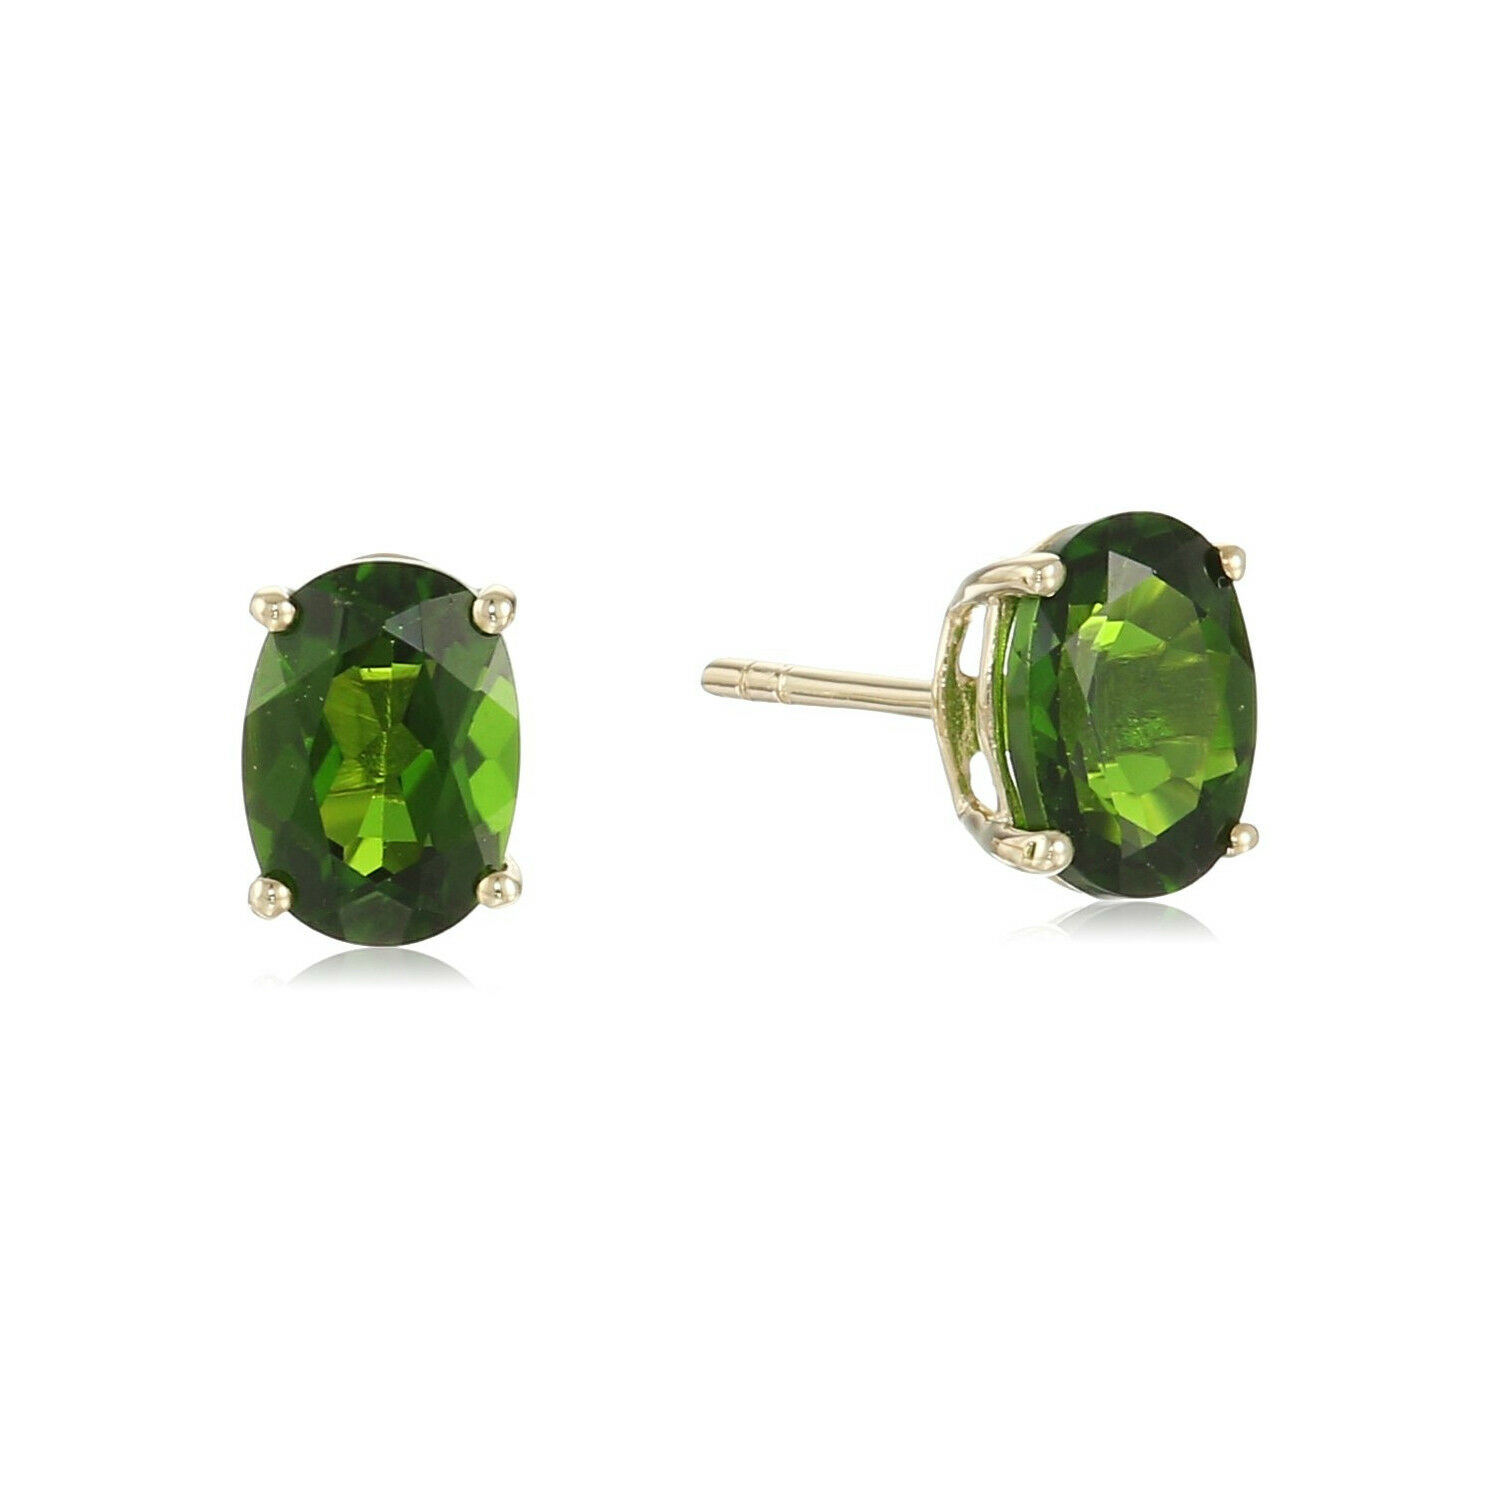 10k gold Oval Stud Earrings in chrome diopside